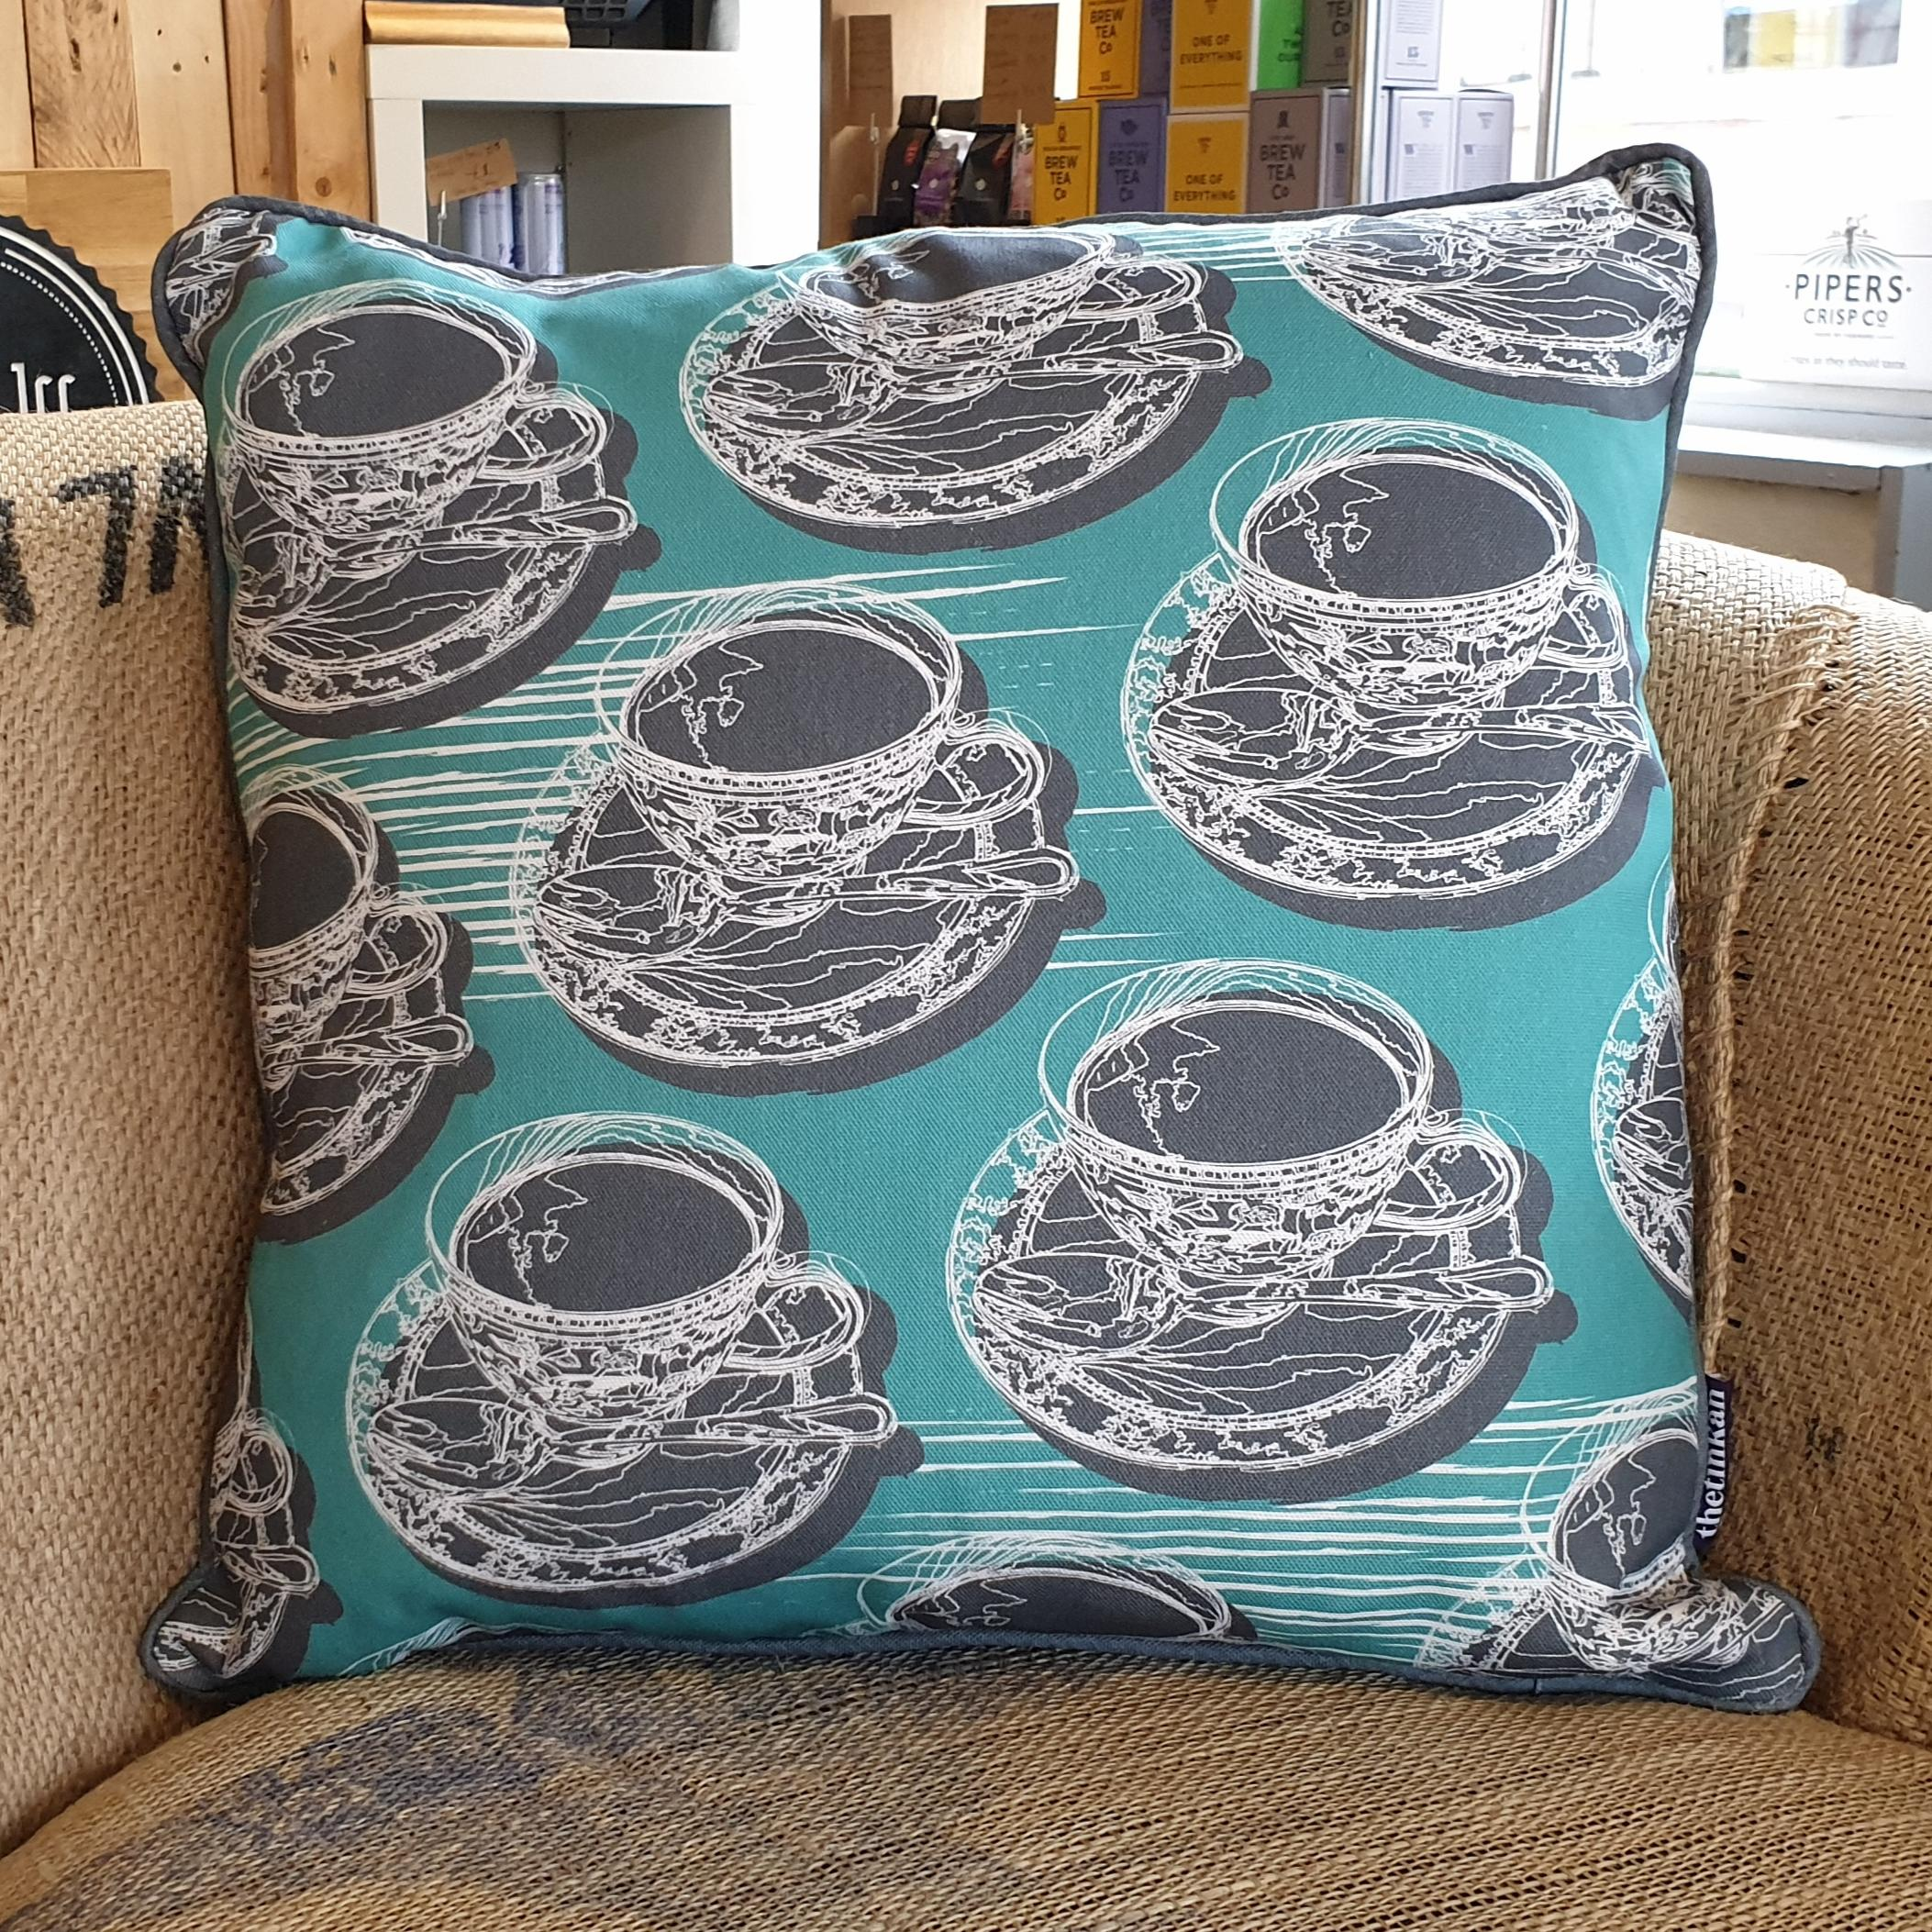 Double-sided aqua teal 45cm square retro Afternoon Tea cushion with artistic white shards and grey handcrafted piping designed by thetinkan. White traced outline of multiple British teacups and saucers each colour filled in charcoal grey. Available with an optional luxury cushion inner pad. VIEW PRODUCT >>